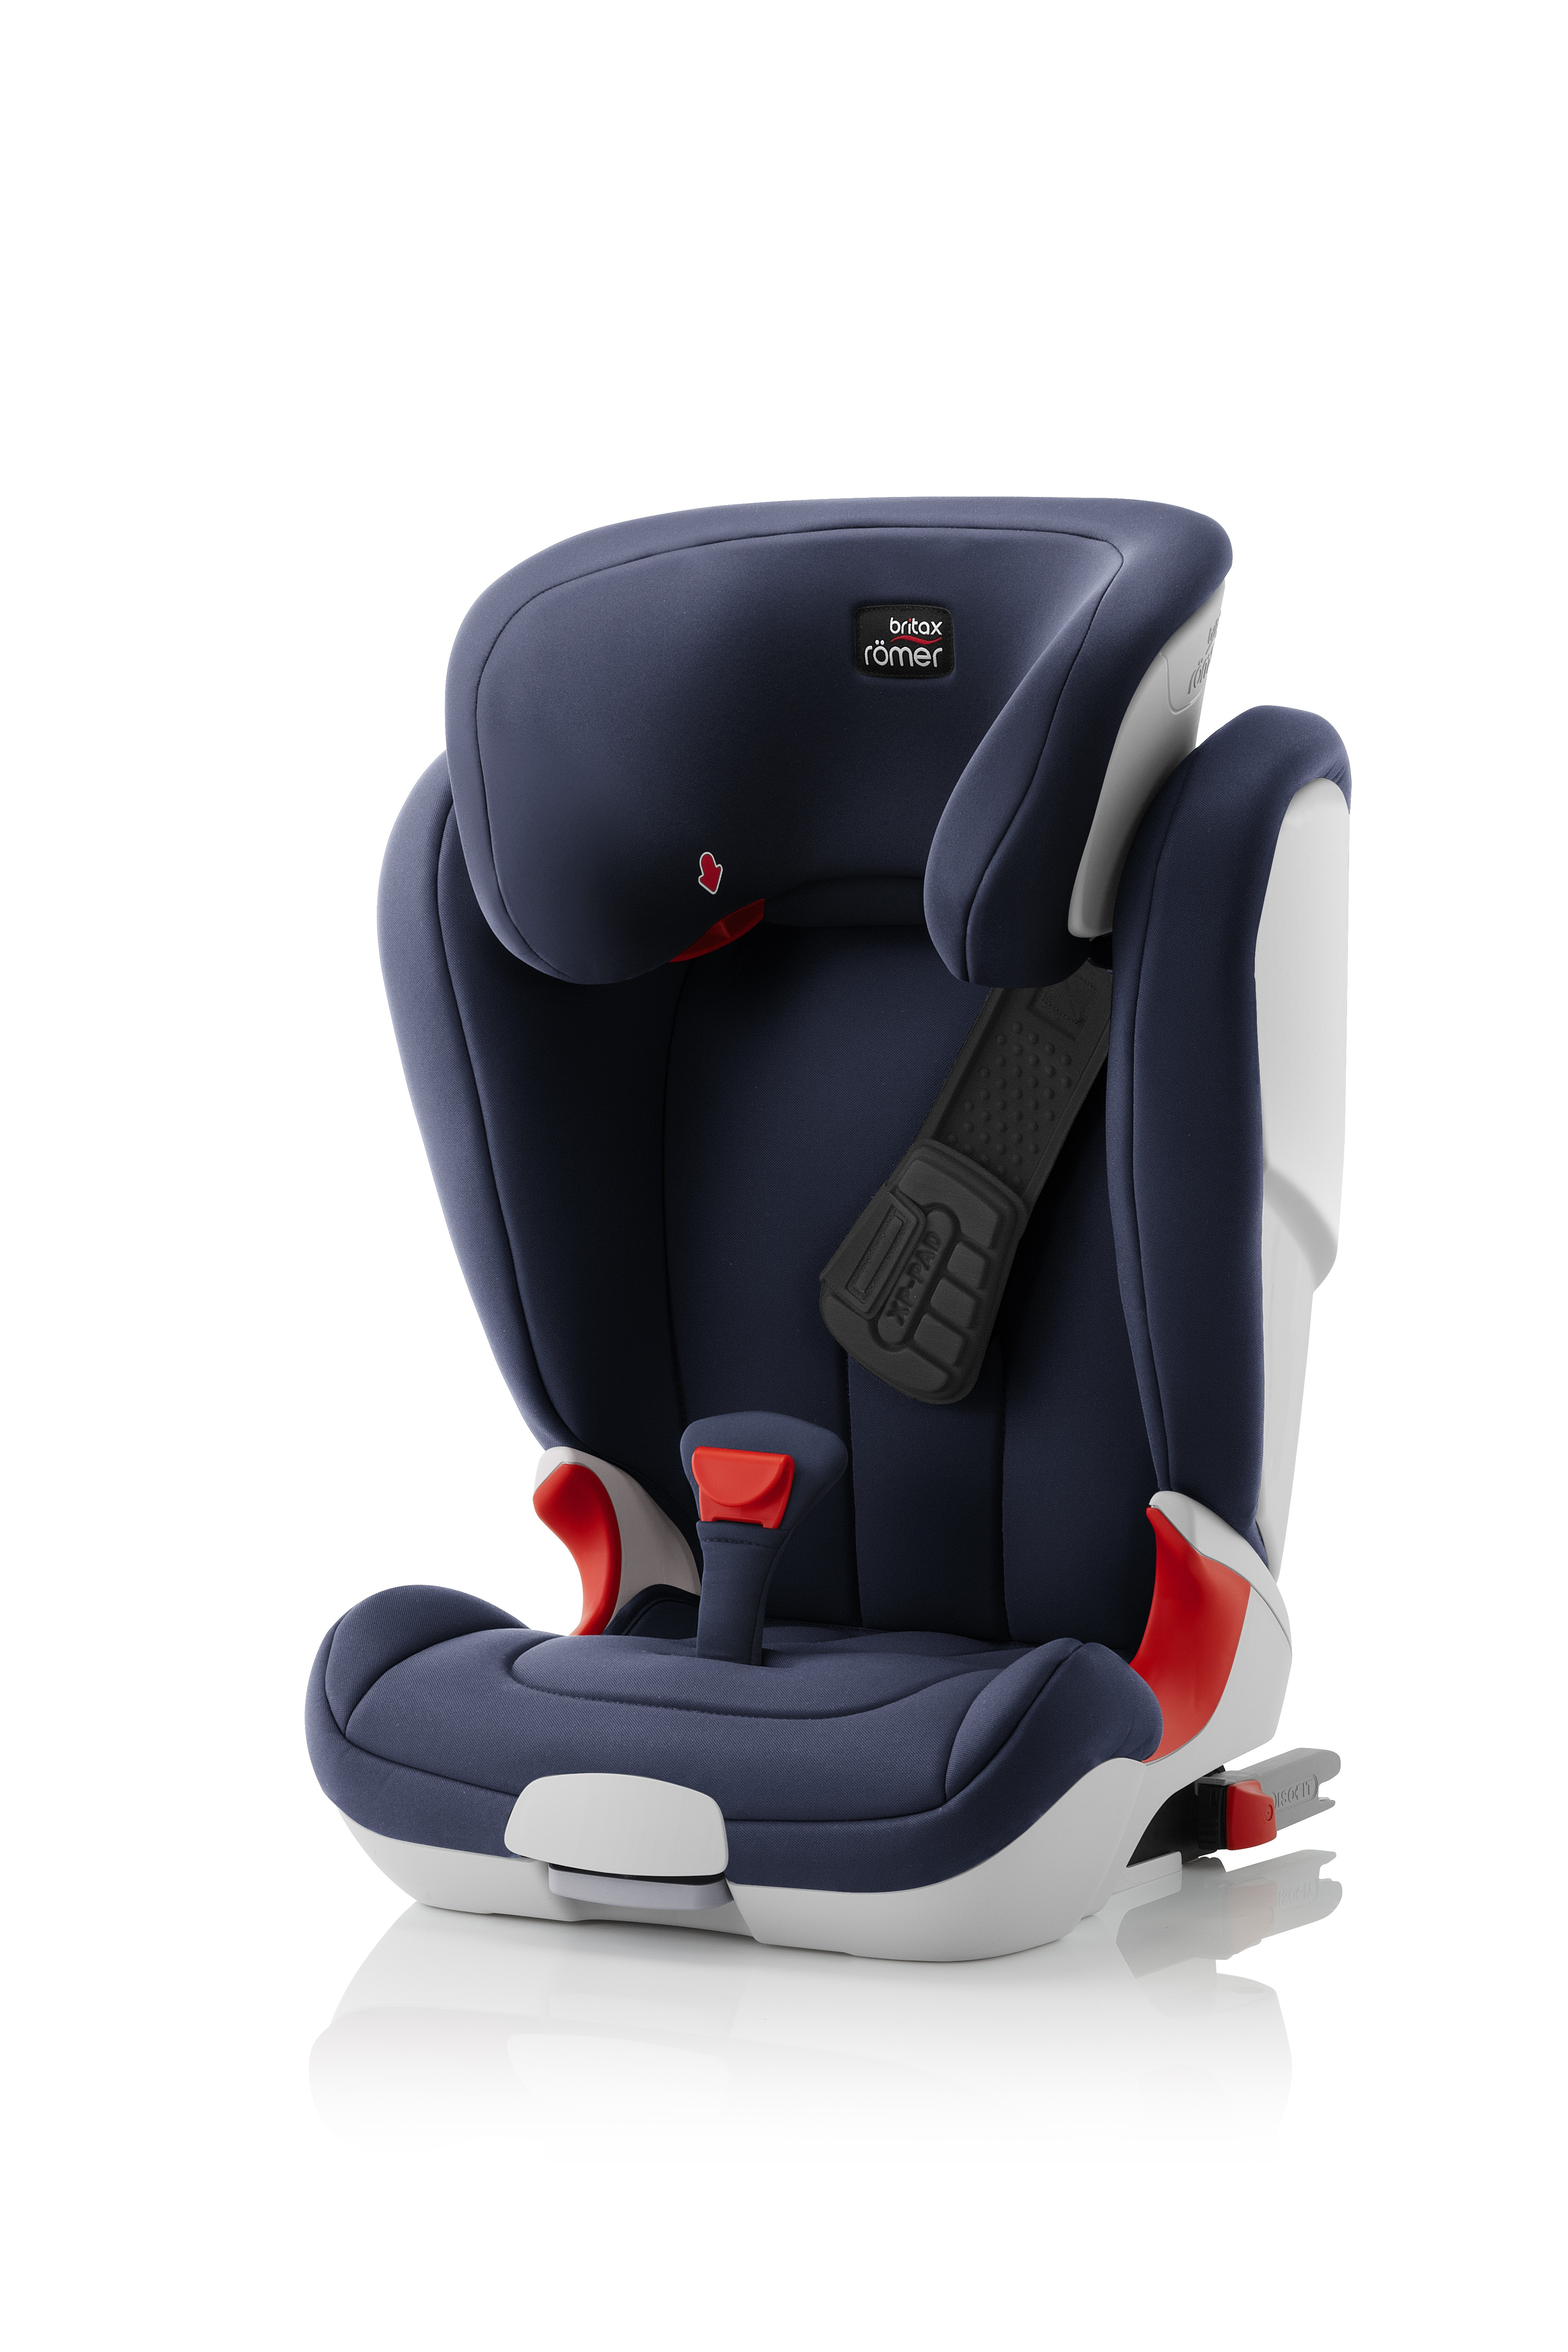 Автокресло Britax Roemer Kidfix II XP Moonlight Blue Trendline, цвет: синийBritax R?mer <br>Автокресло Britax Roemer Kidfix II XP Moonlight Blue Trendline, цвет: синий<br>